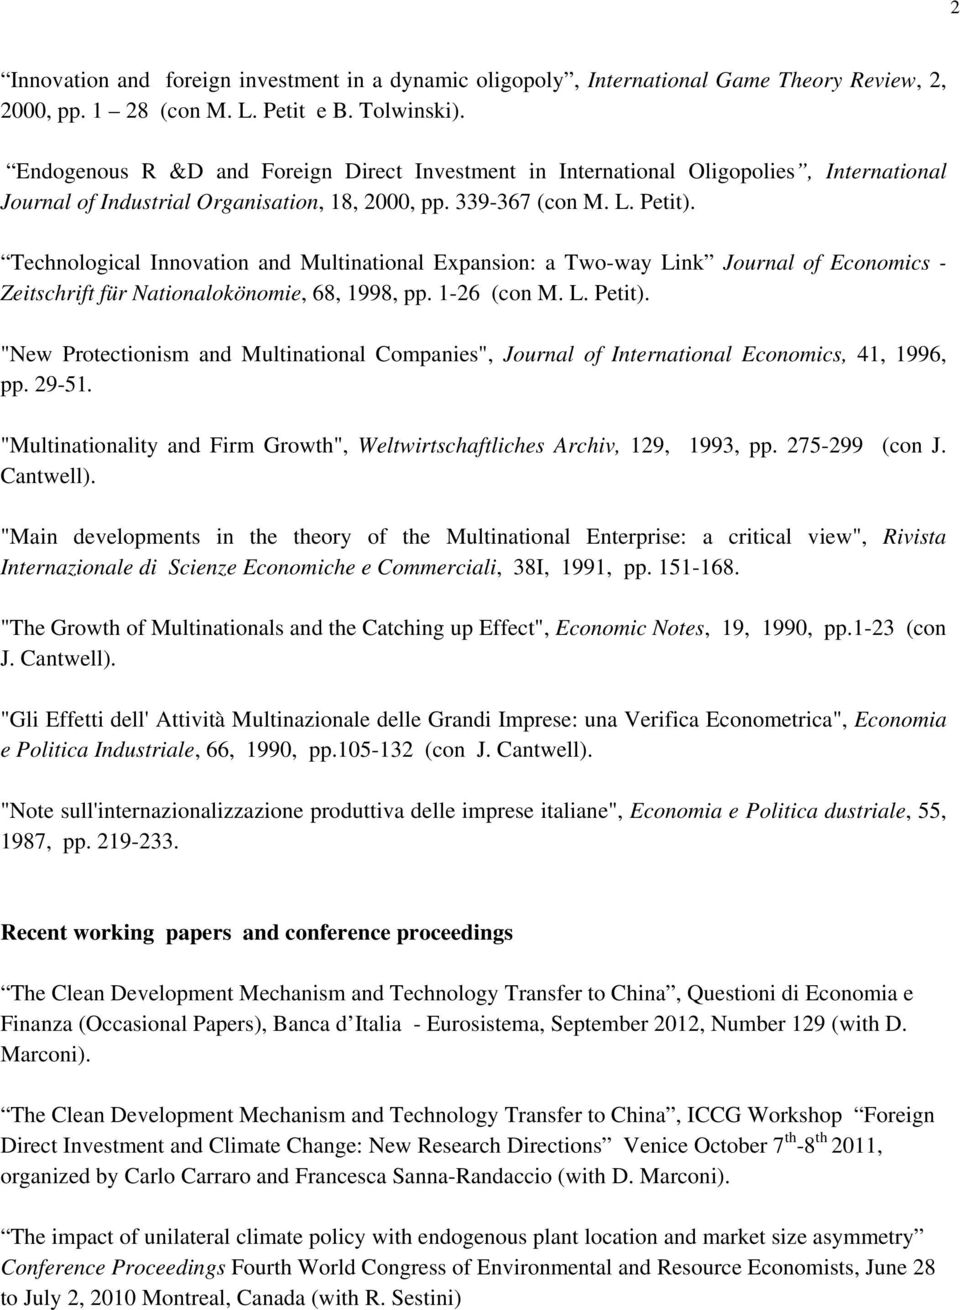 Technological Innovation and Multinational Expansion: a Two-way Link Journal of Economics - Zeitschrift für Nationalokönomie, 68, 1998, pp. 1-26 (con M. L. Petit).